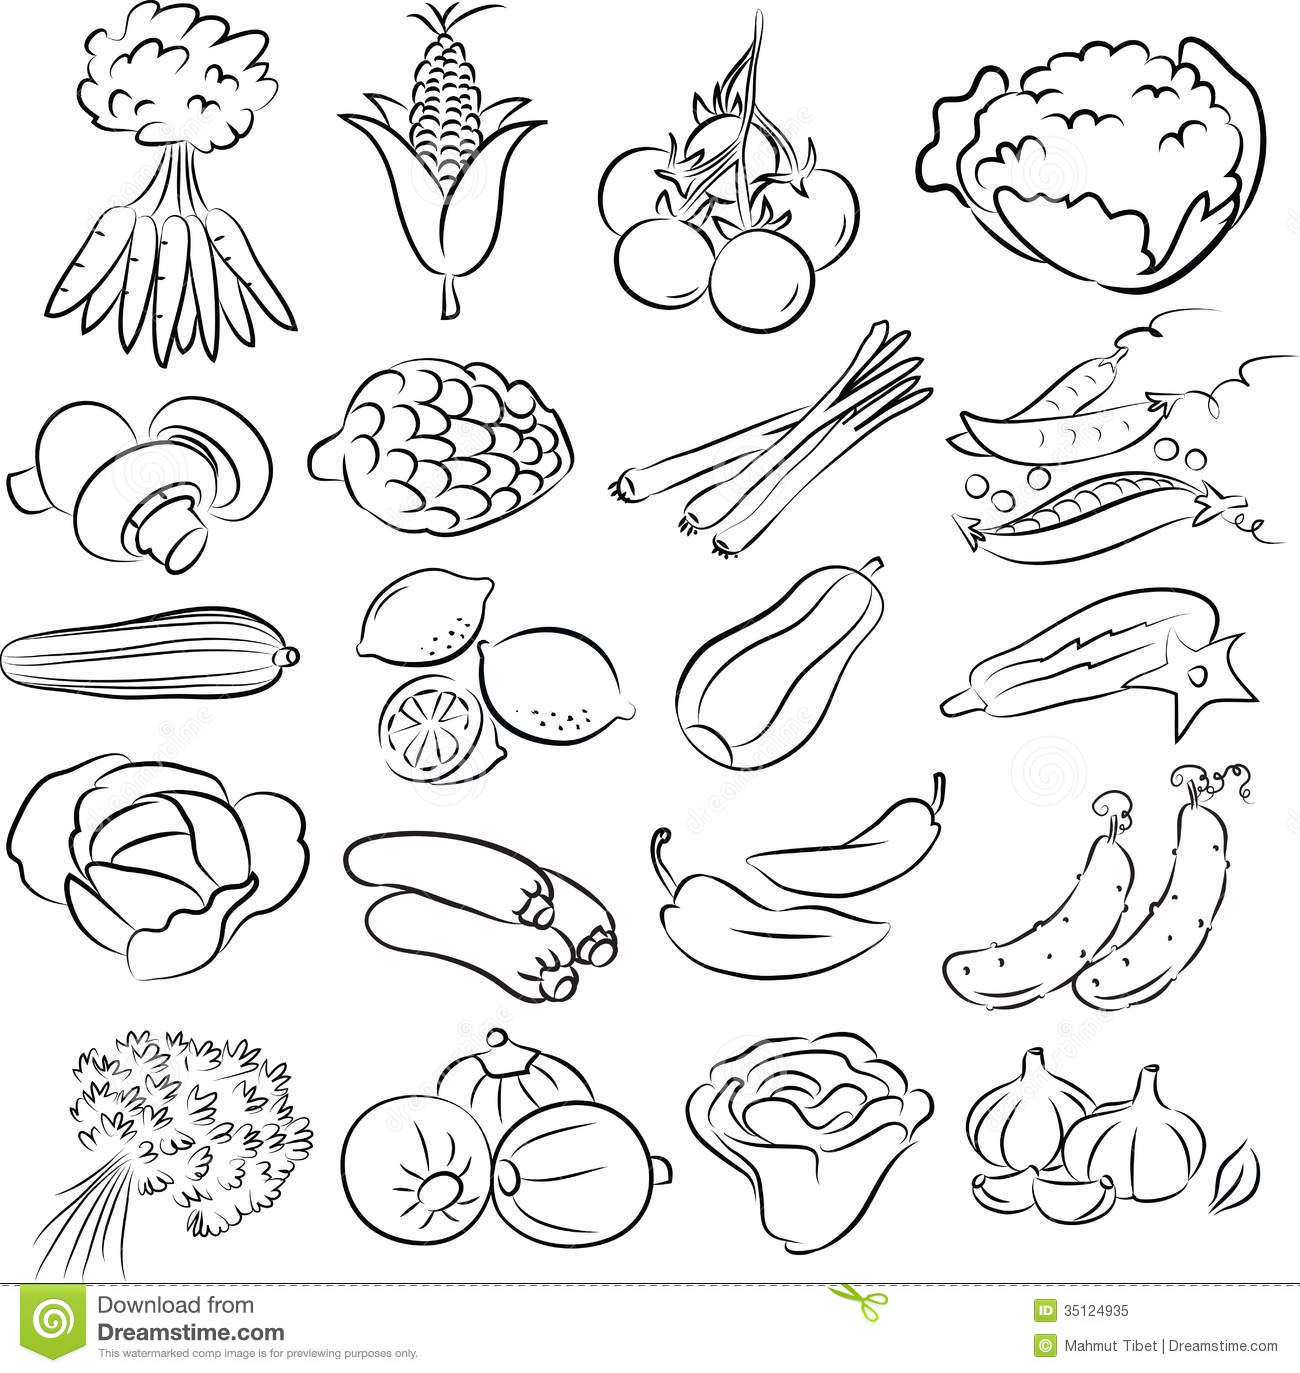 Line Drawing Vegetables : Vegetables set royalty free stock photo image